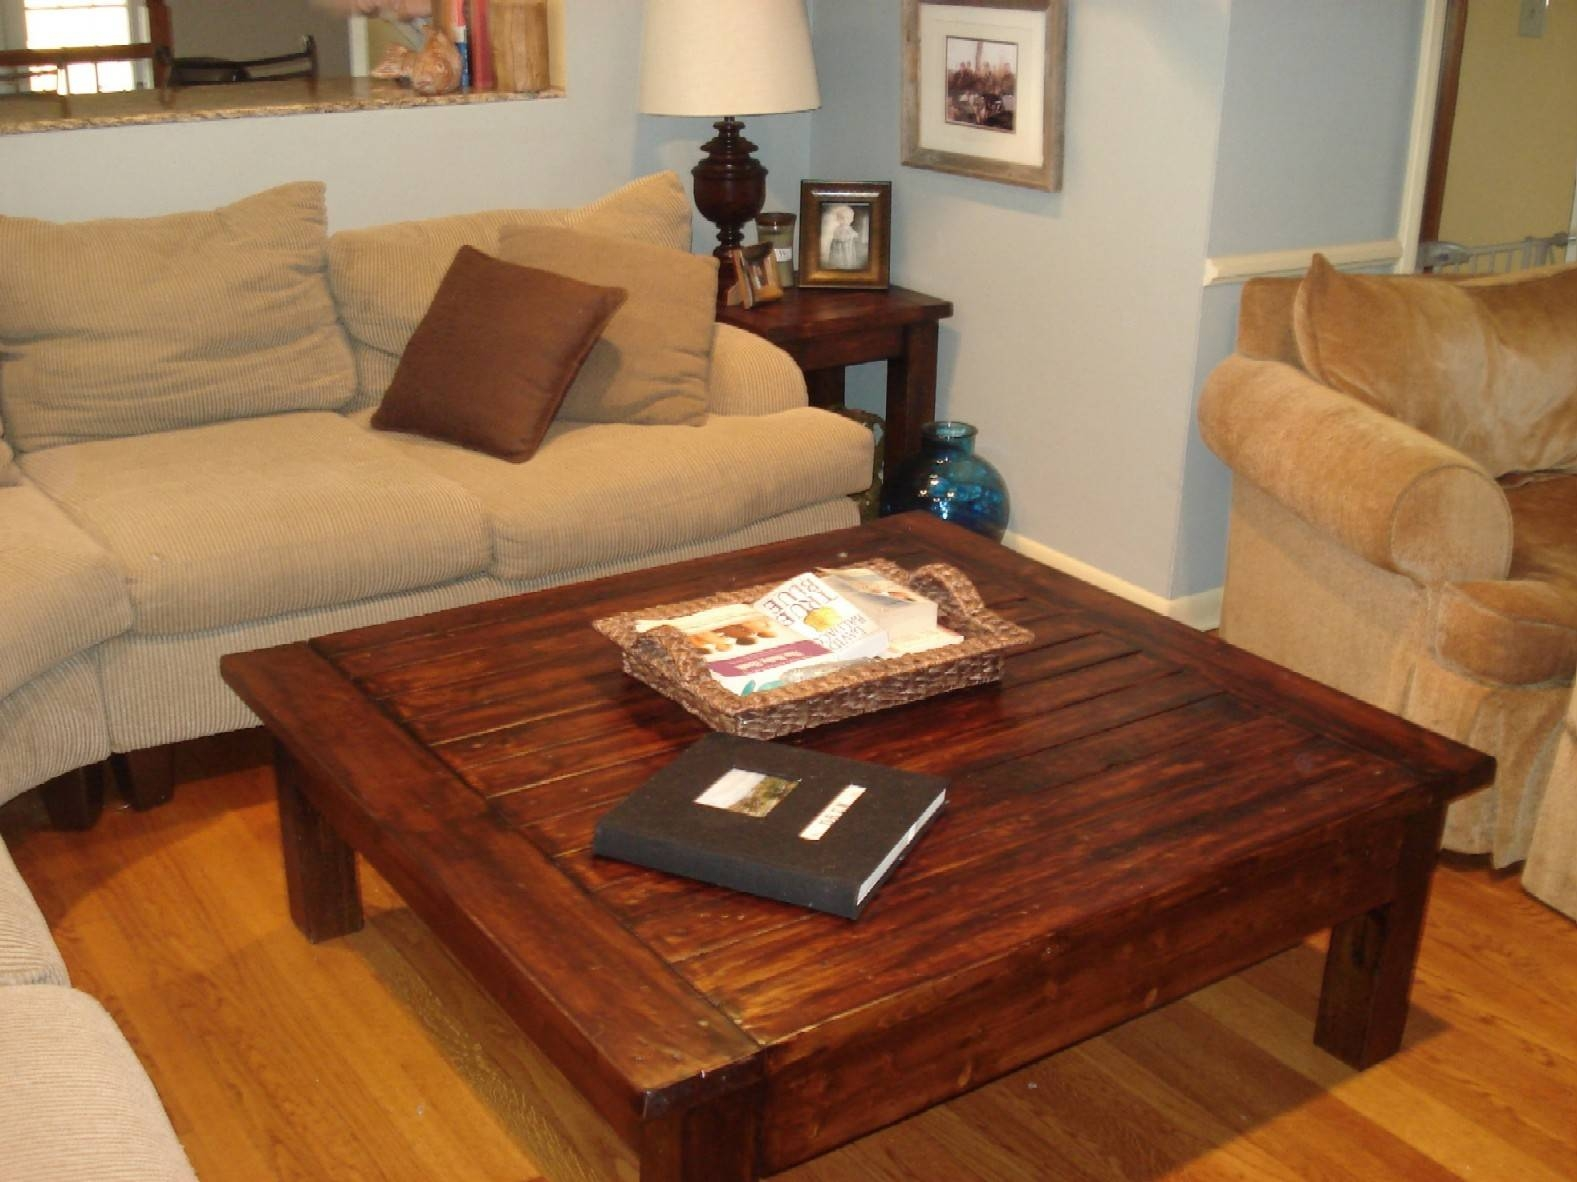 Coffee Table: Extraordinary Big Coffee Tables Decorating Ideas with Huge Square Coffee Tables (Image 5 of 15)